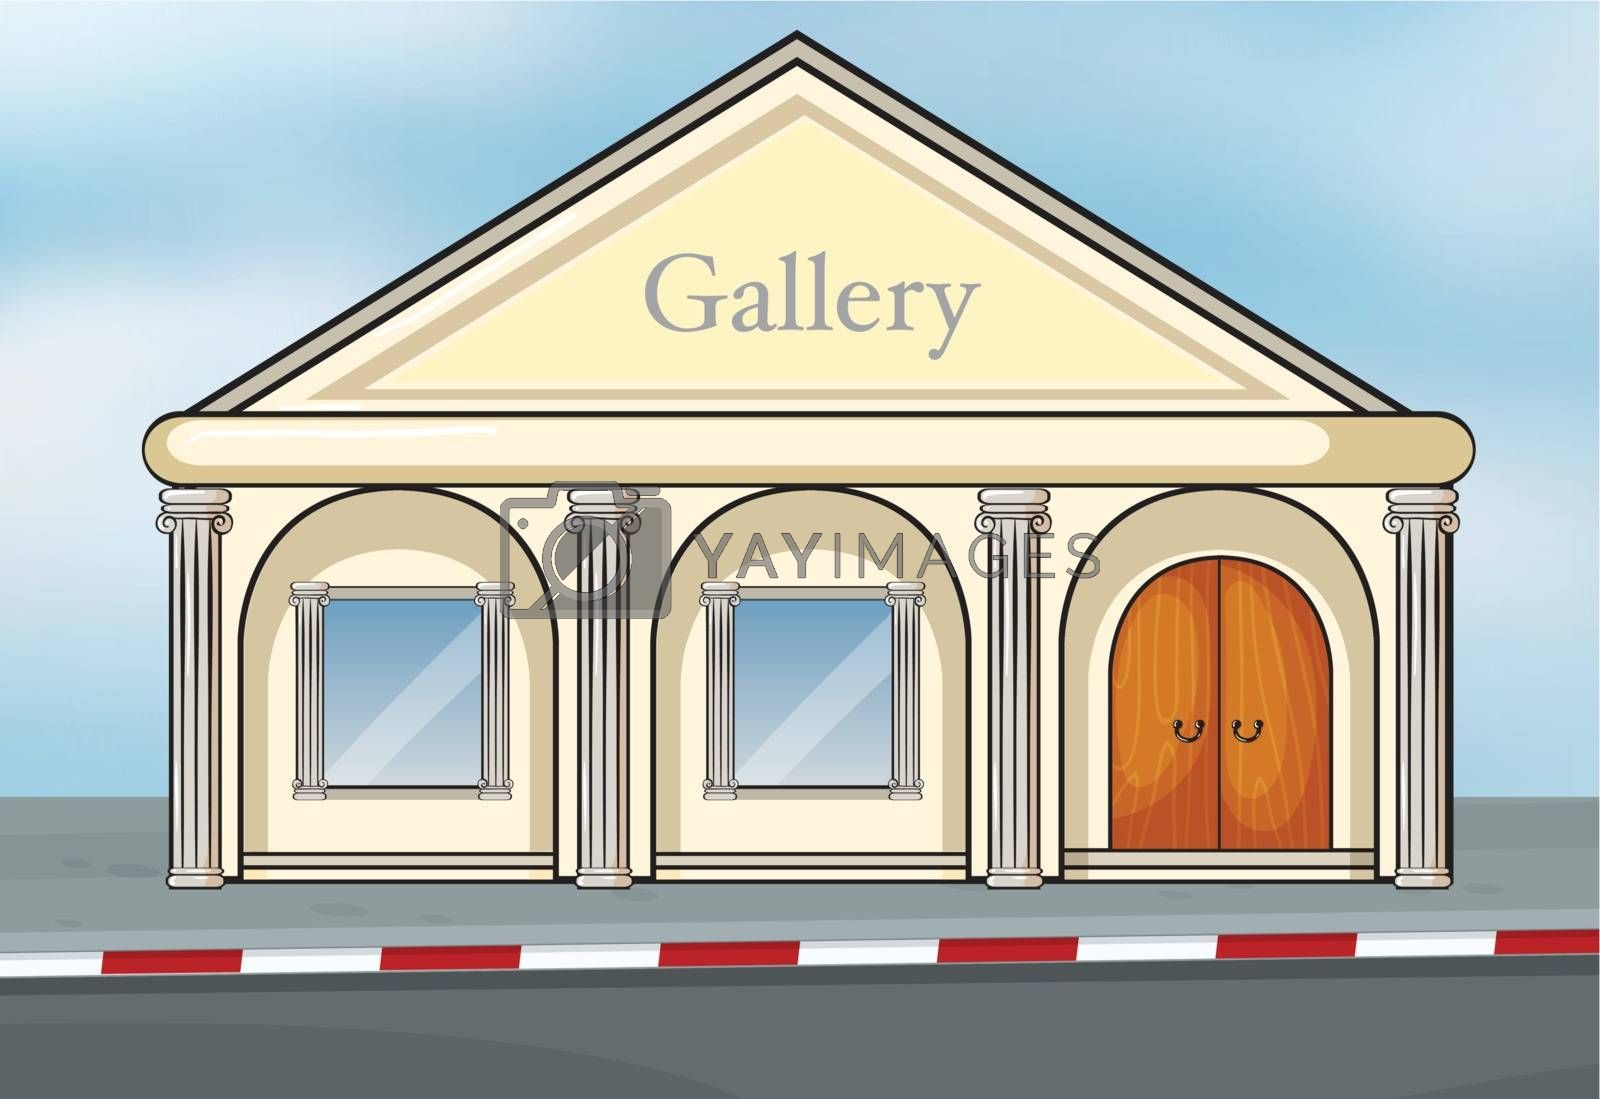 Illustration of a gallery house